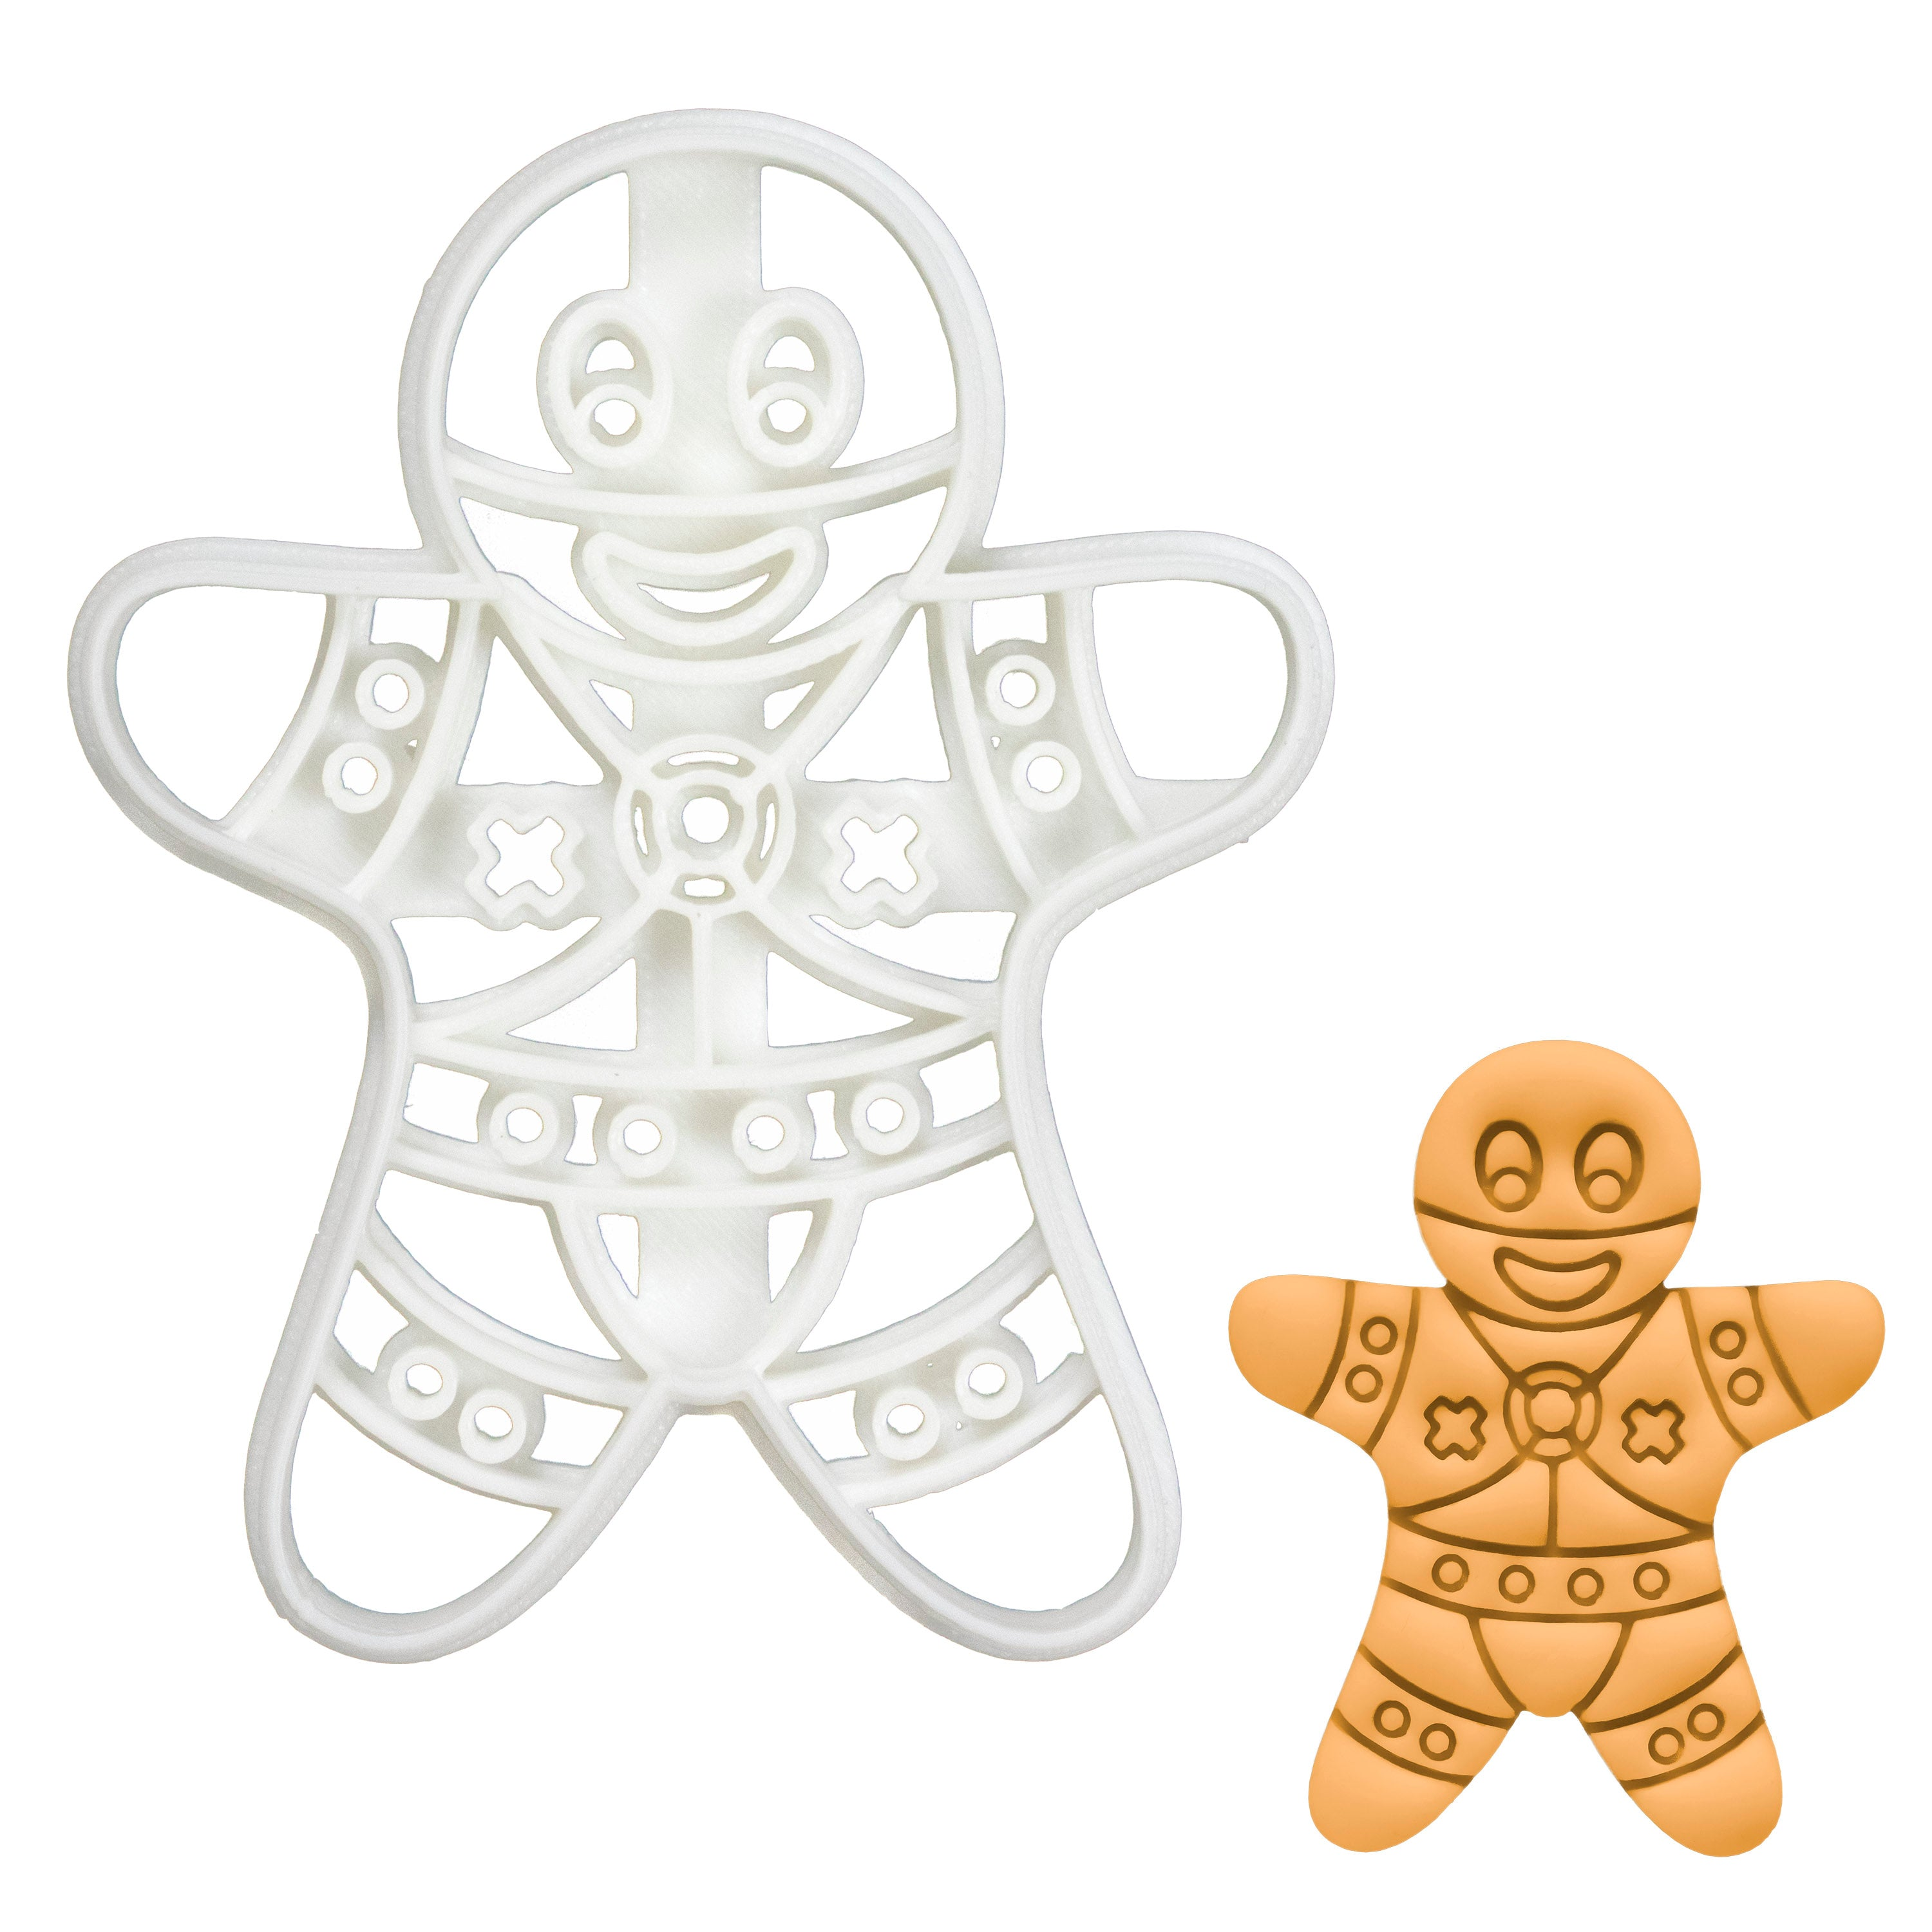 BDSM Dominant Gingerbread Man Cookie Cutter